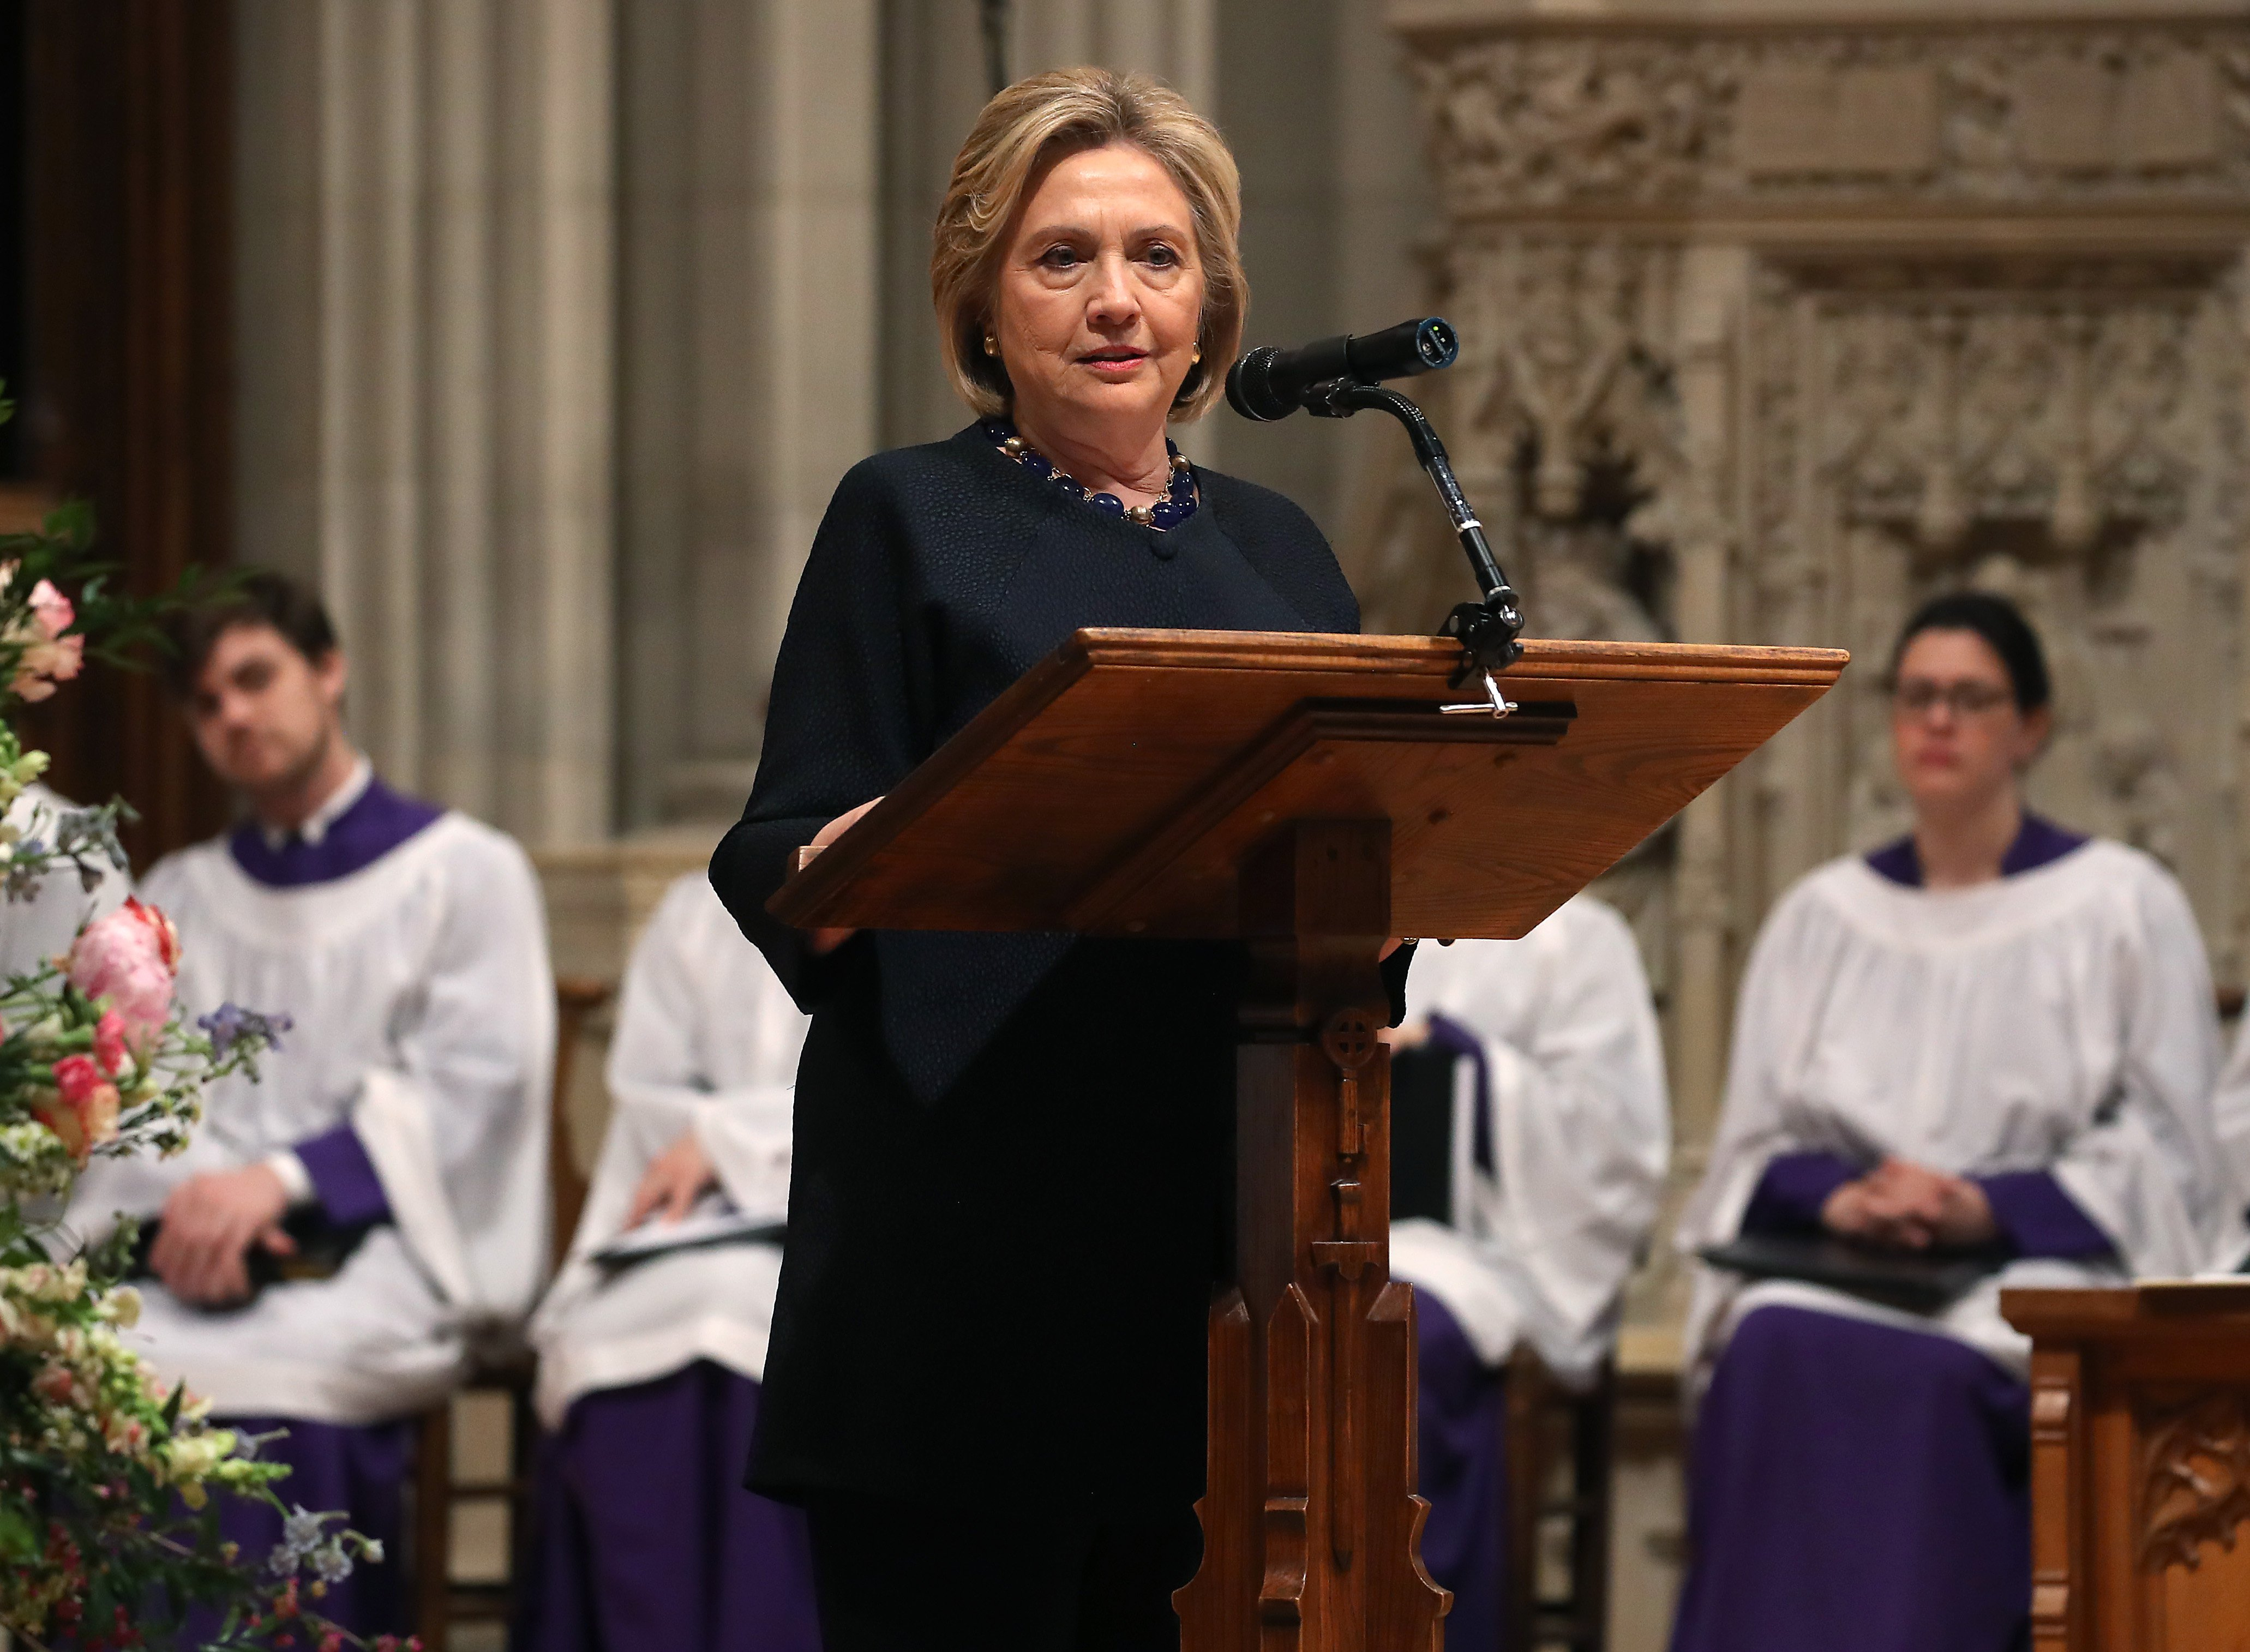 Hillary Clinton delivering a speech at Rep. Ellen Tauscher's memorial service at the Washington National Cathedral | Photo: Getty Images